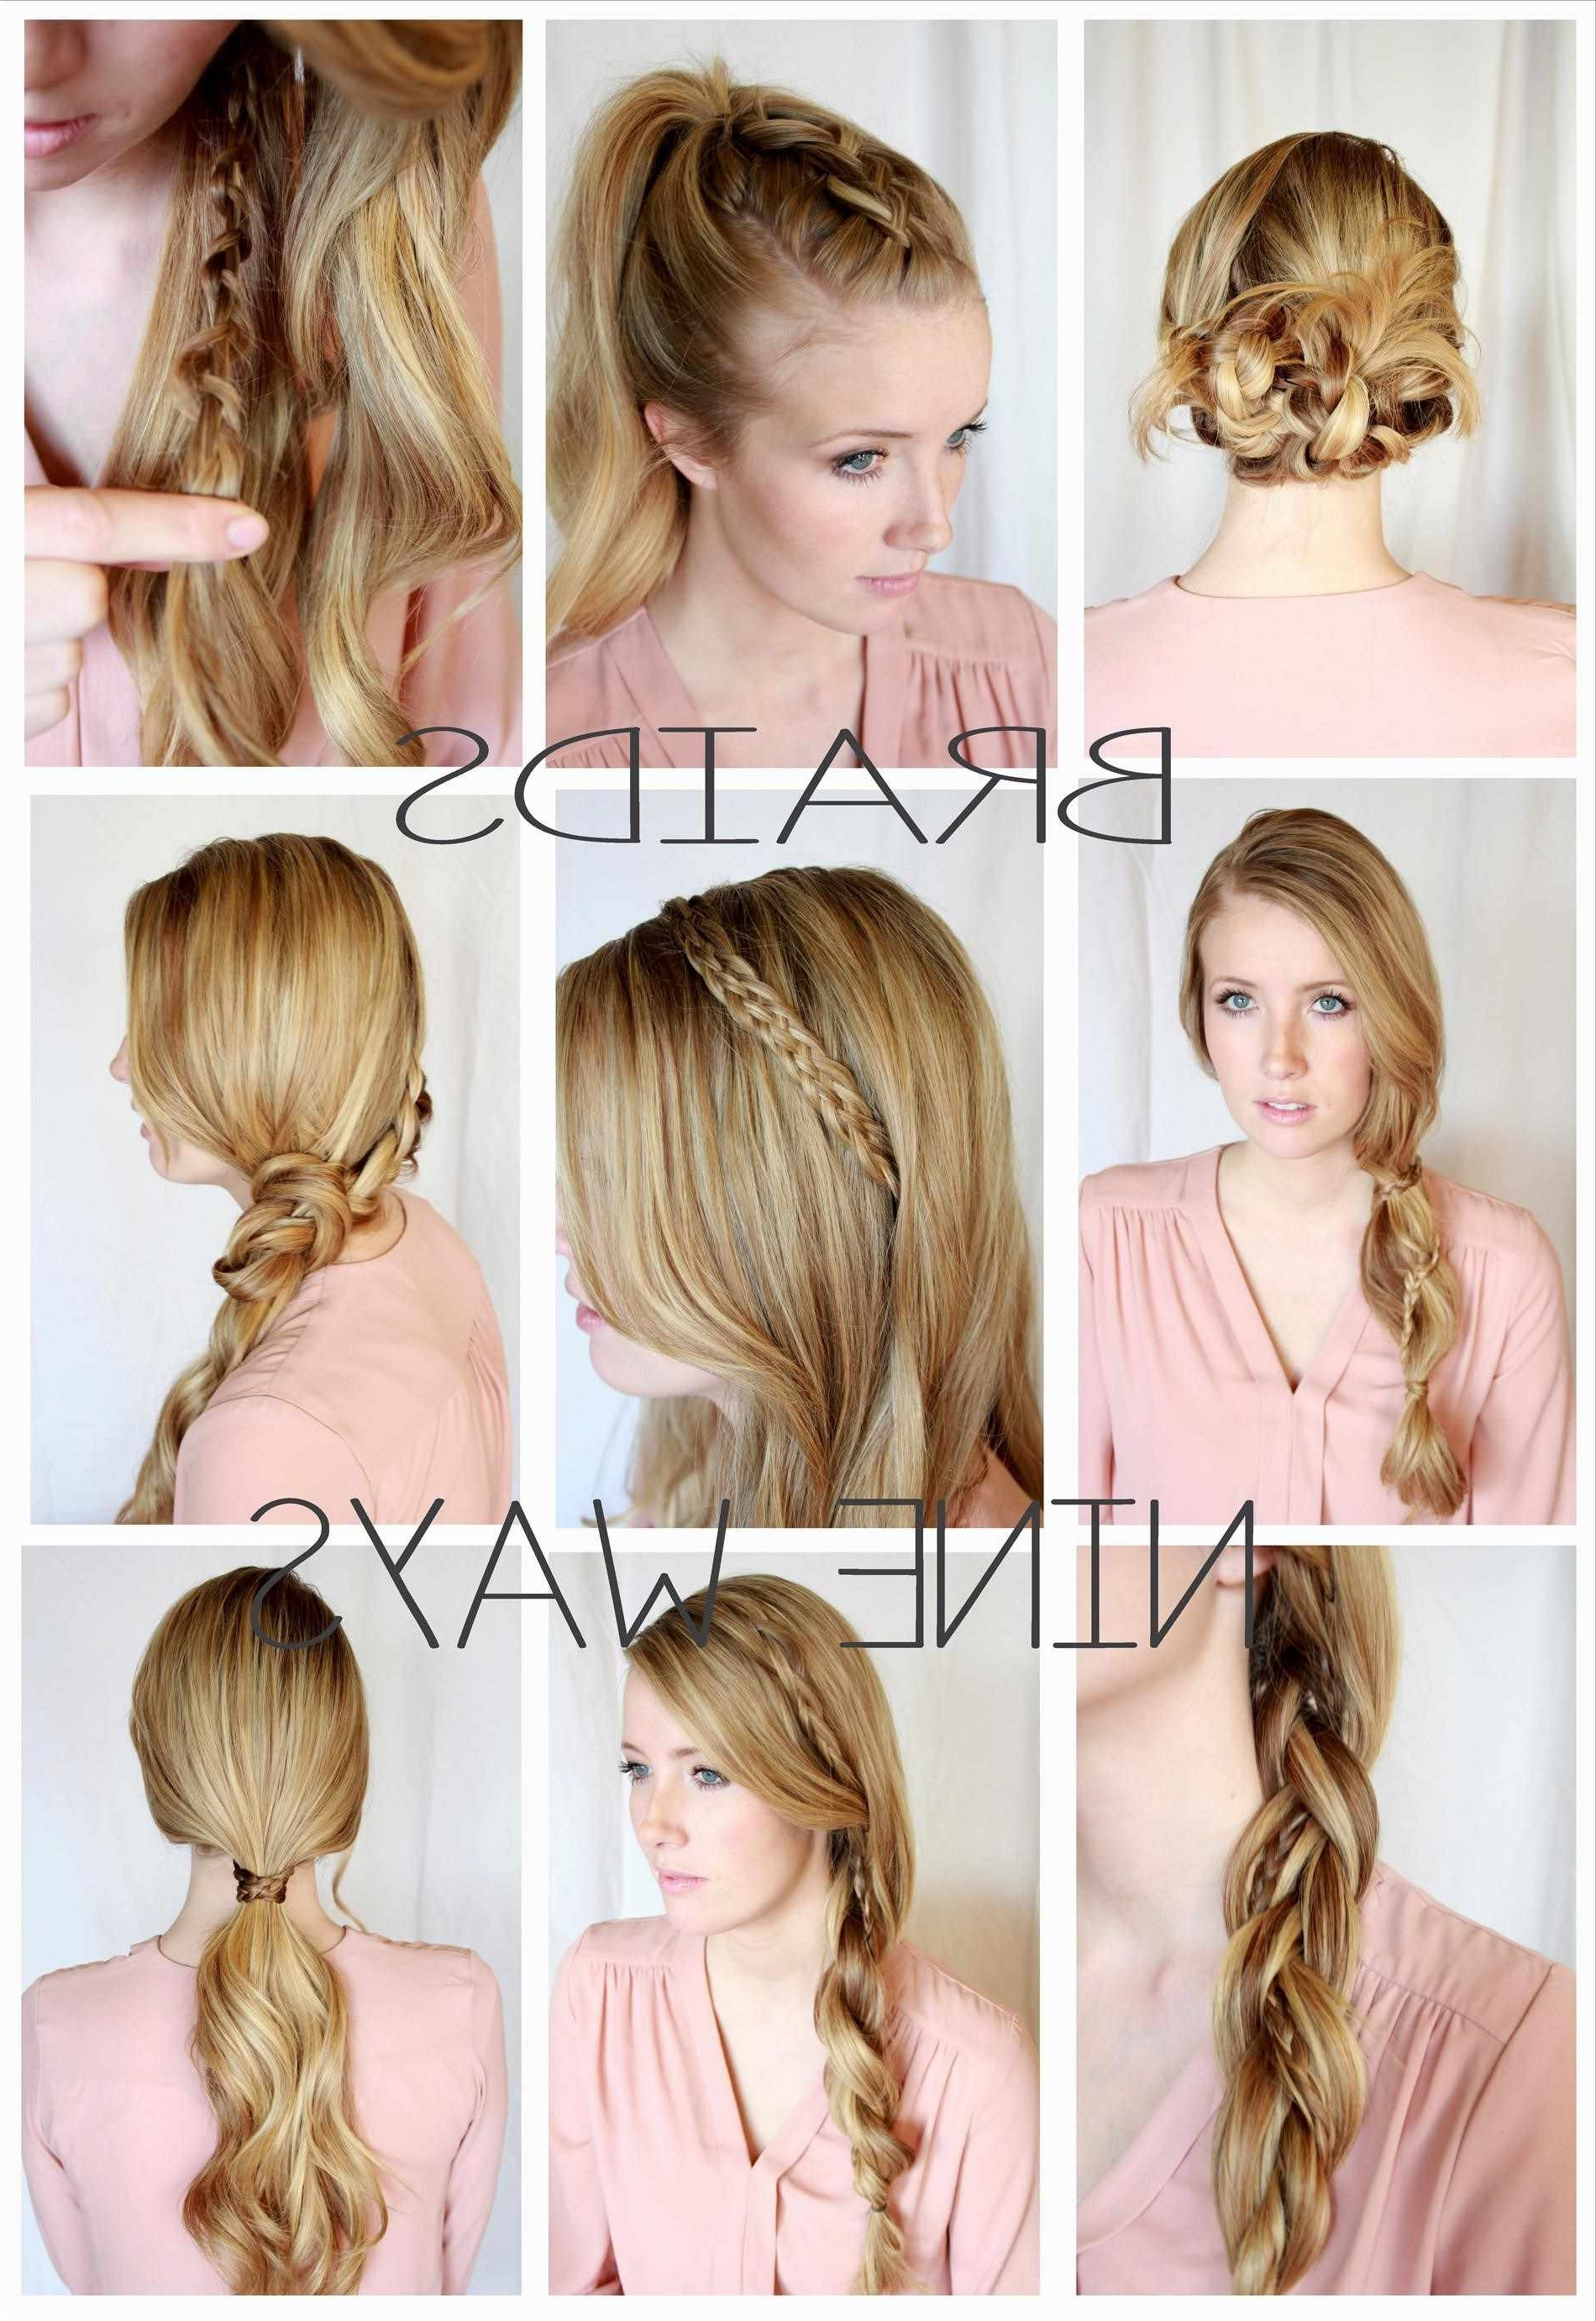 Easy Braided Updos For Medium Hair Hairsstyles Co For Beautiful Hair Pertaining To Easy Braided Updos For Medium Hair (Gallery 5 of 15)